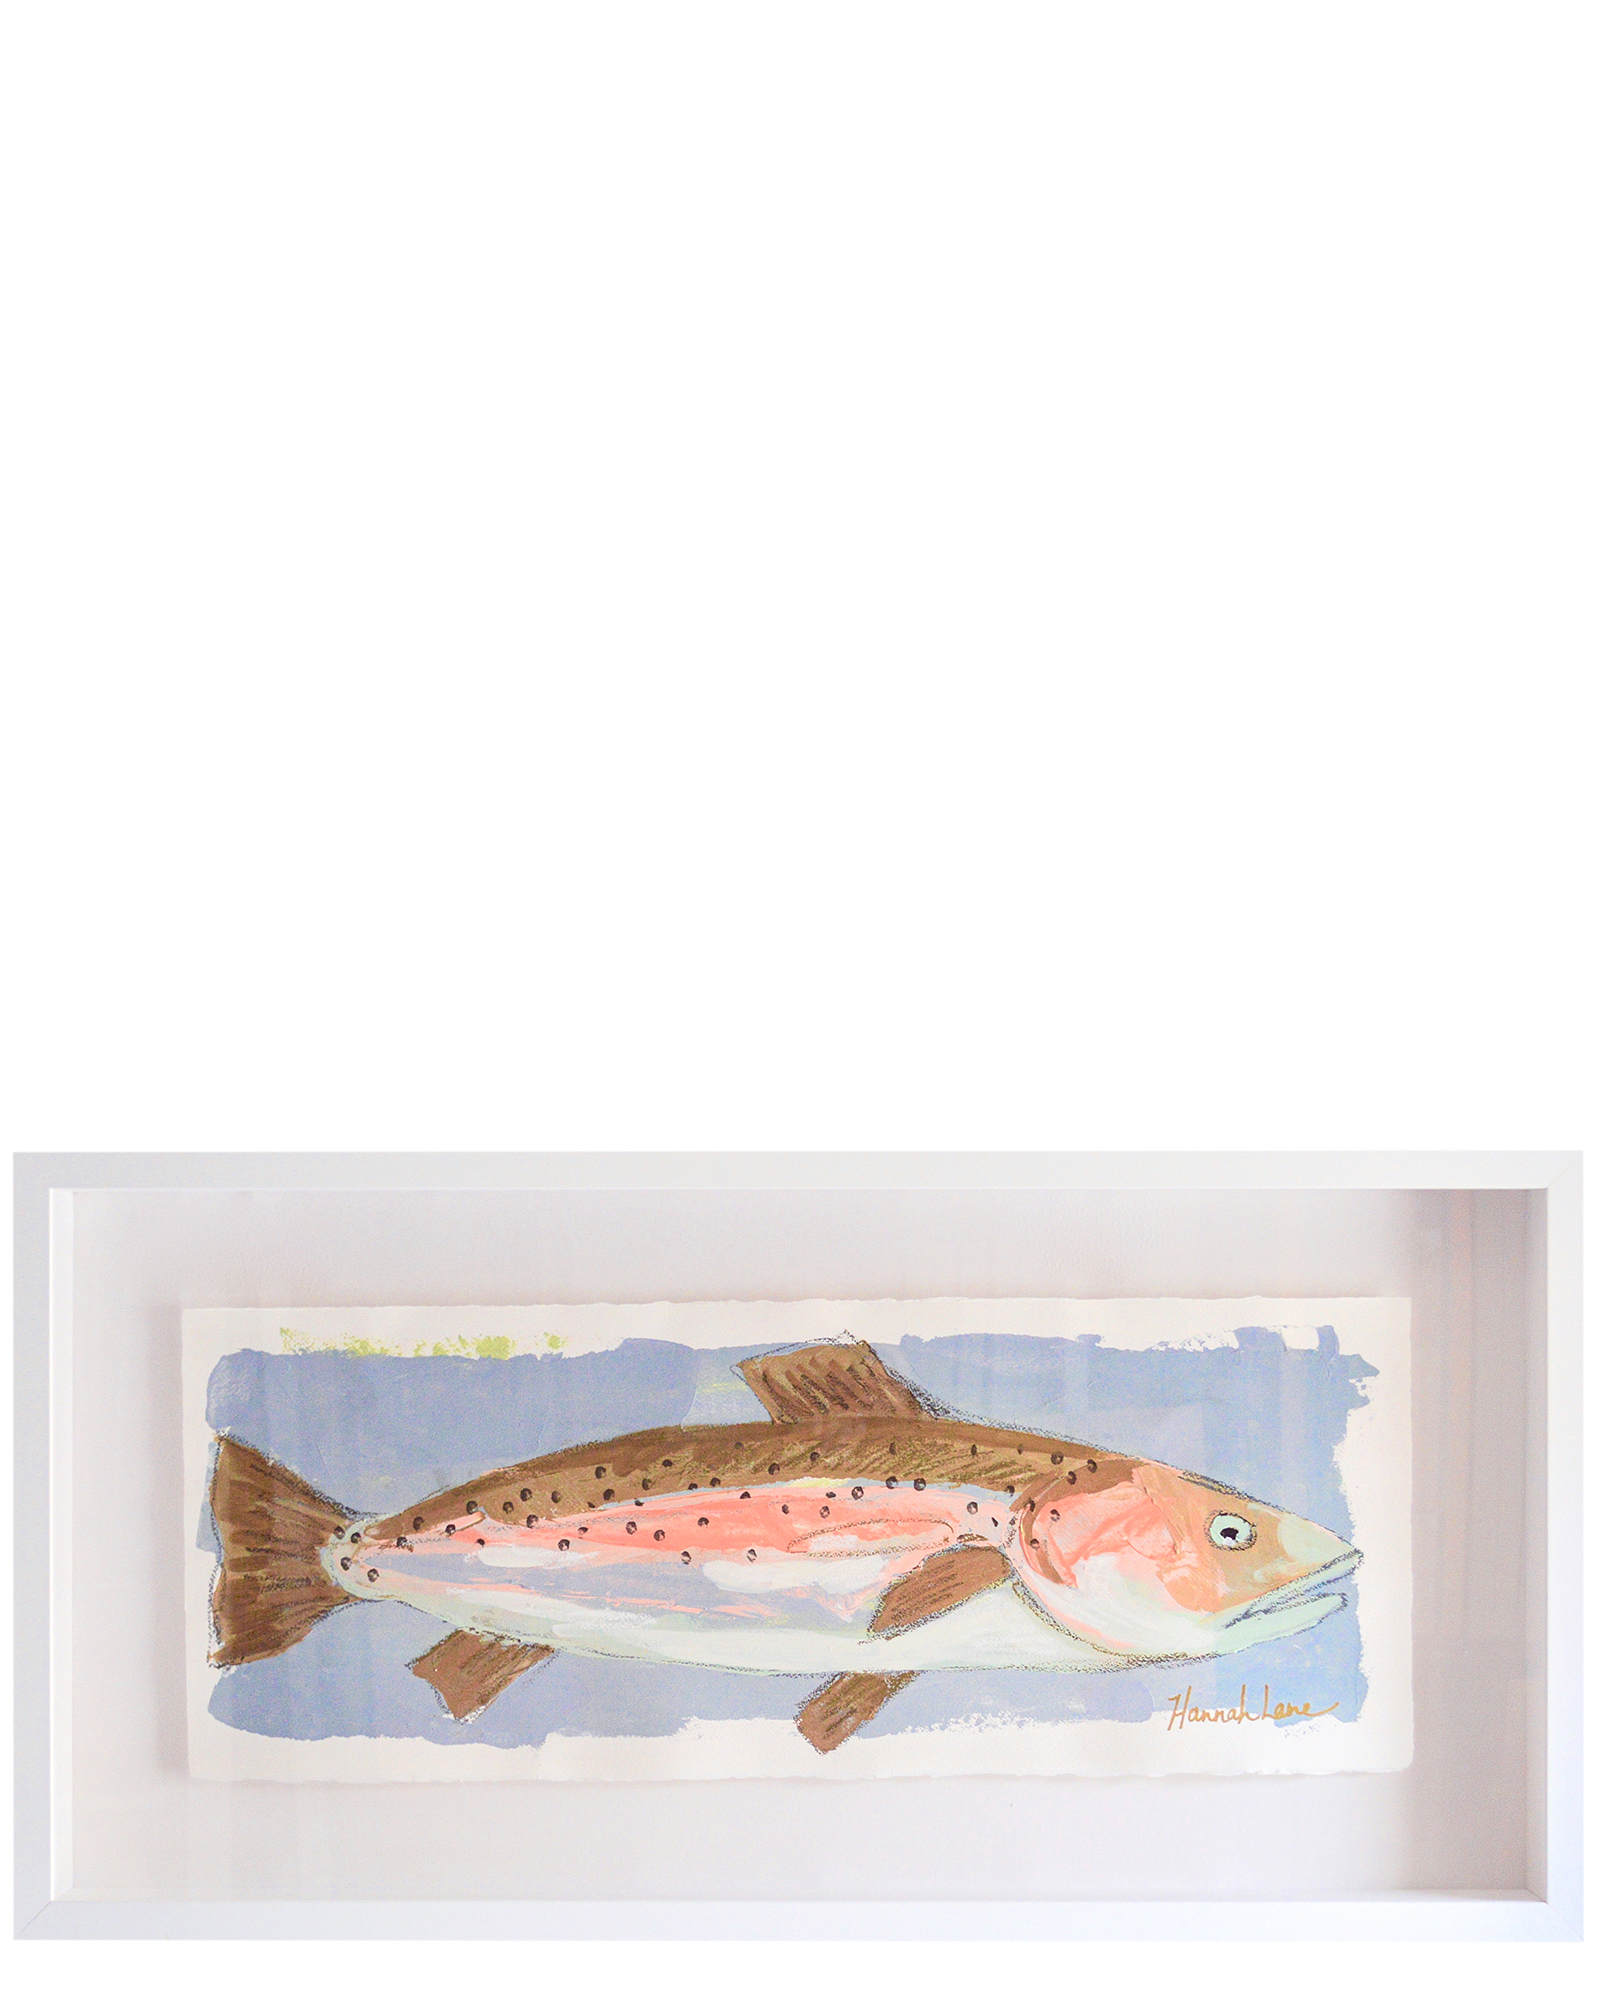 """""""Framed Trout 1"""" by Hannah Lane,"""